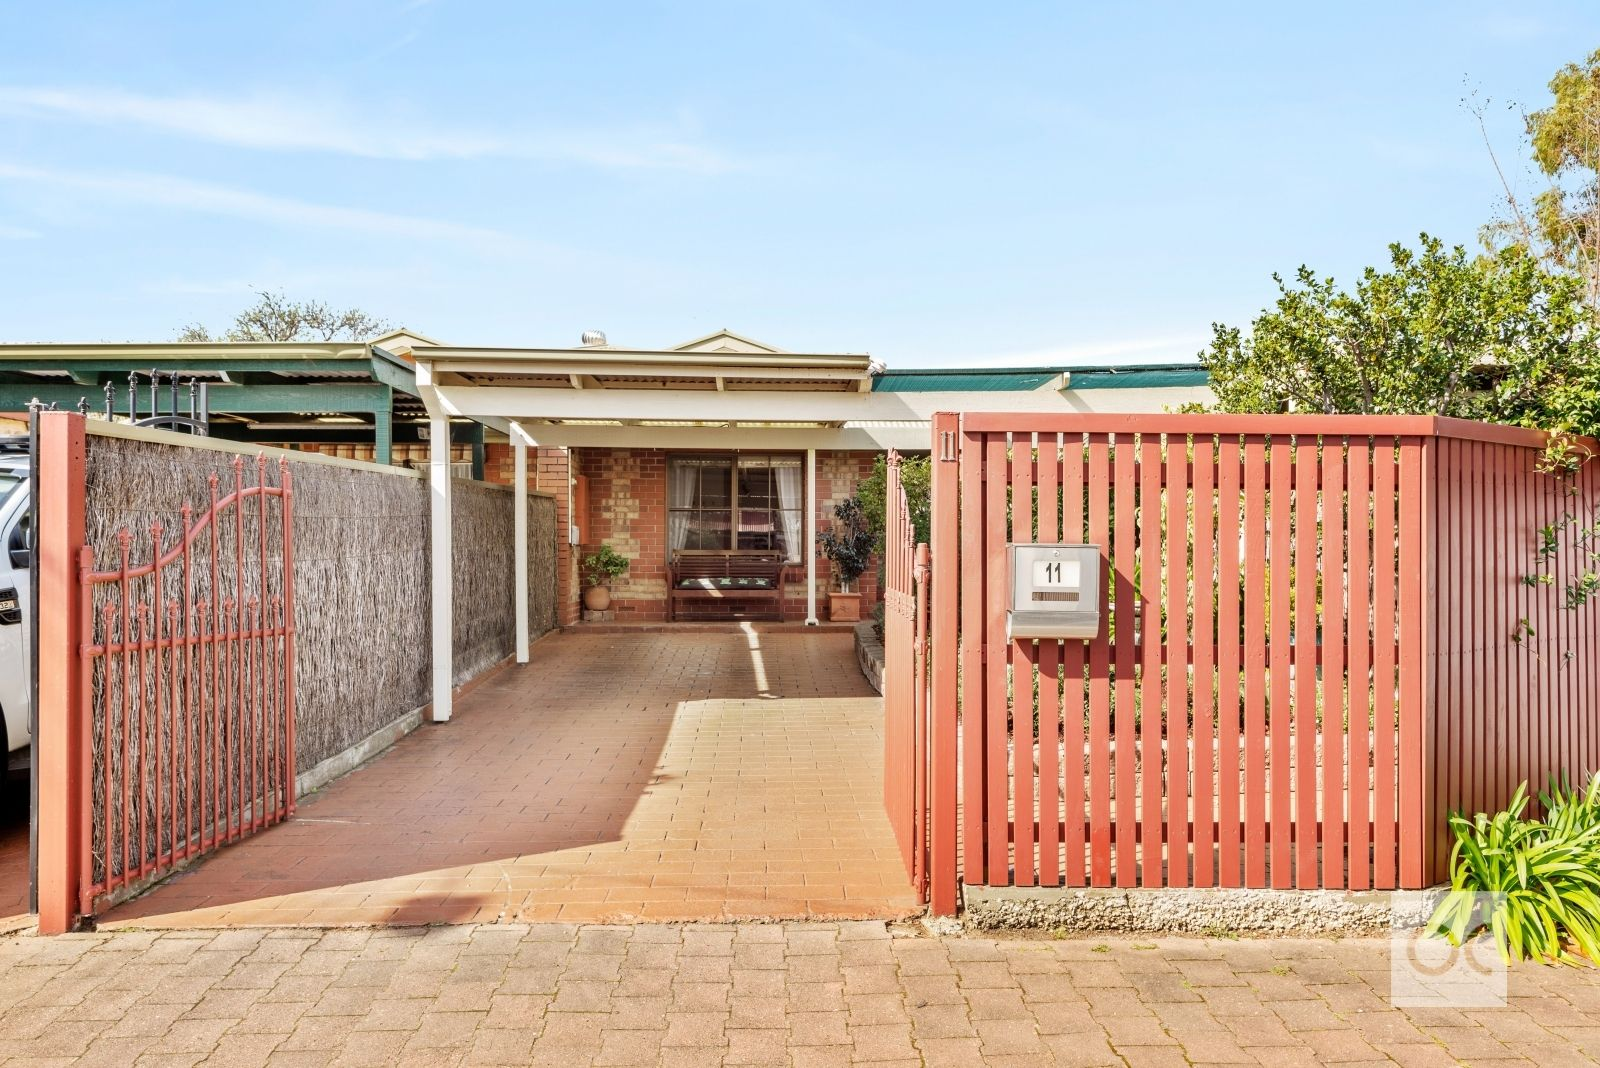 3 bedrooms House in 11 Foster  Street FORESTVILLE SA, 5035